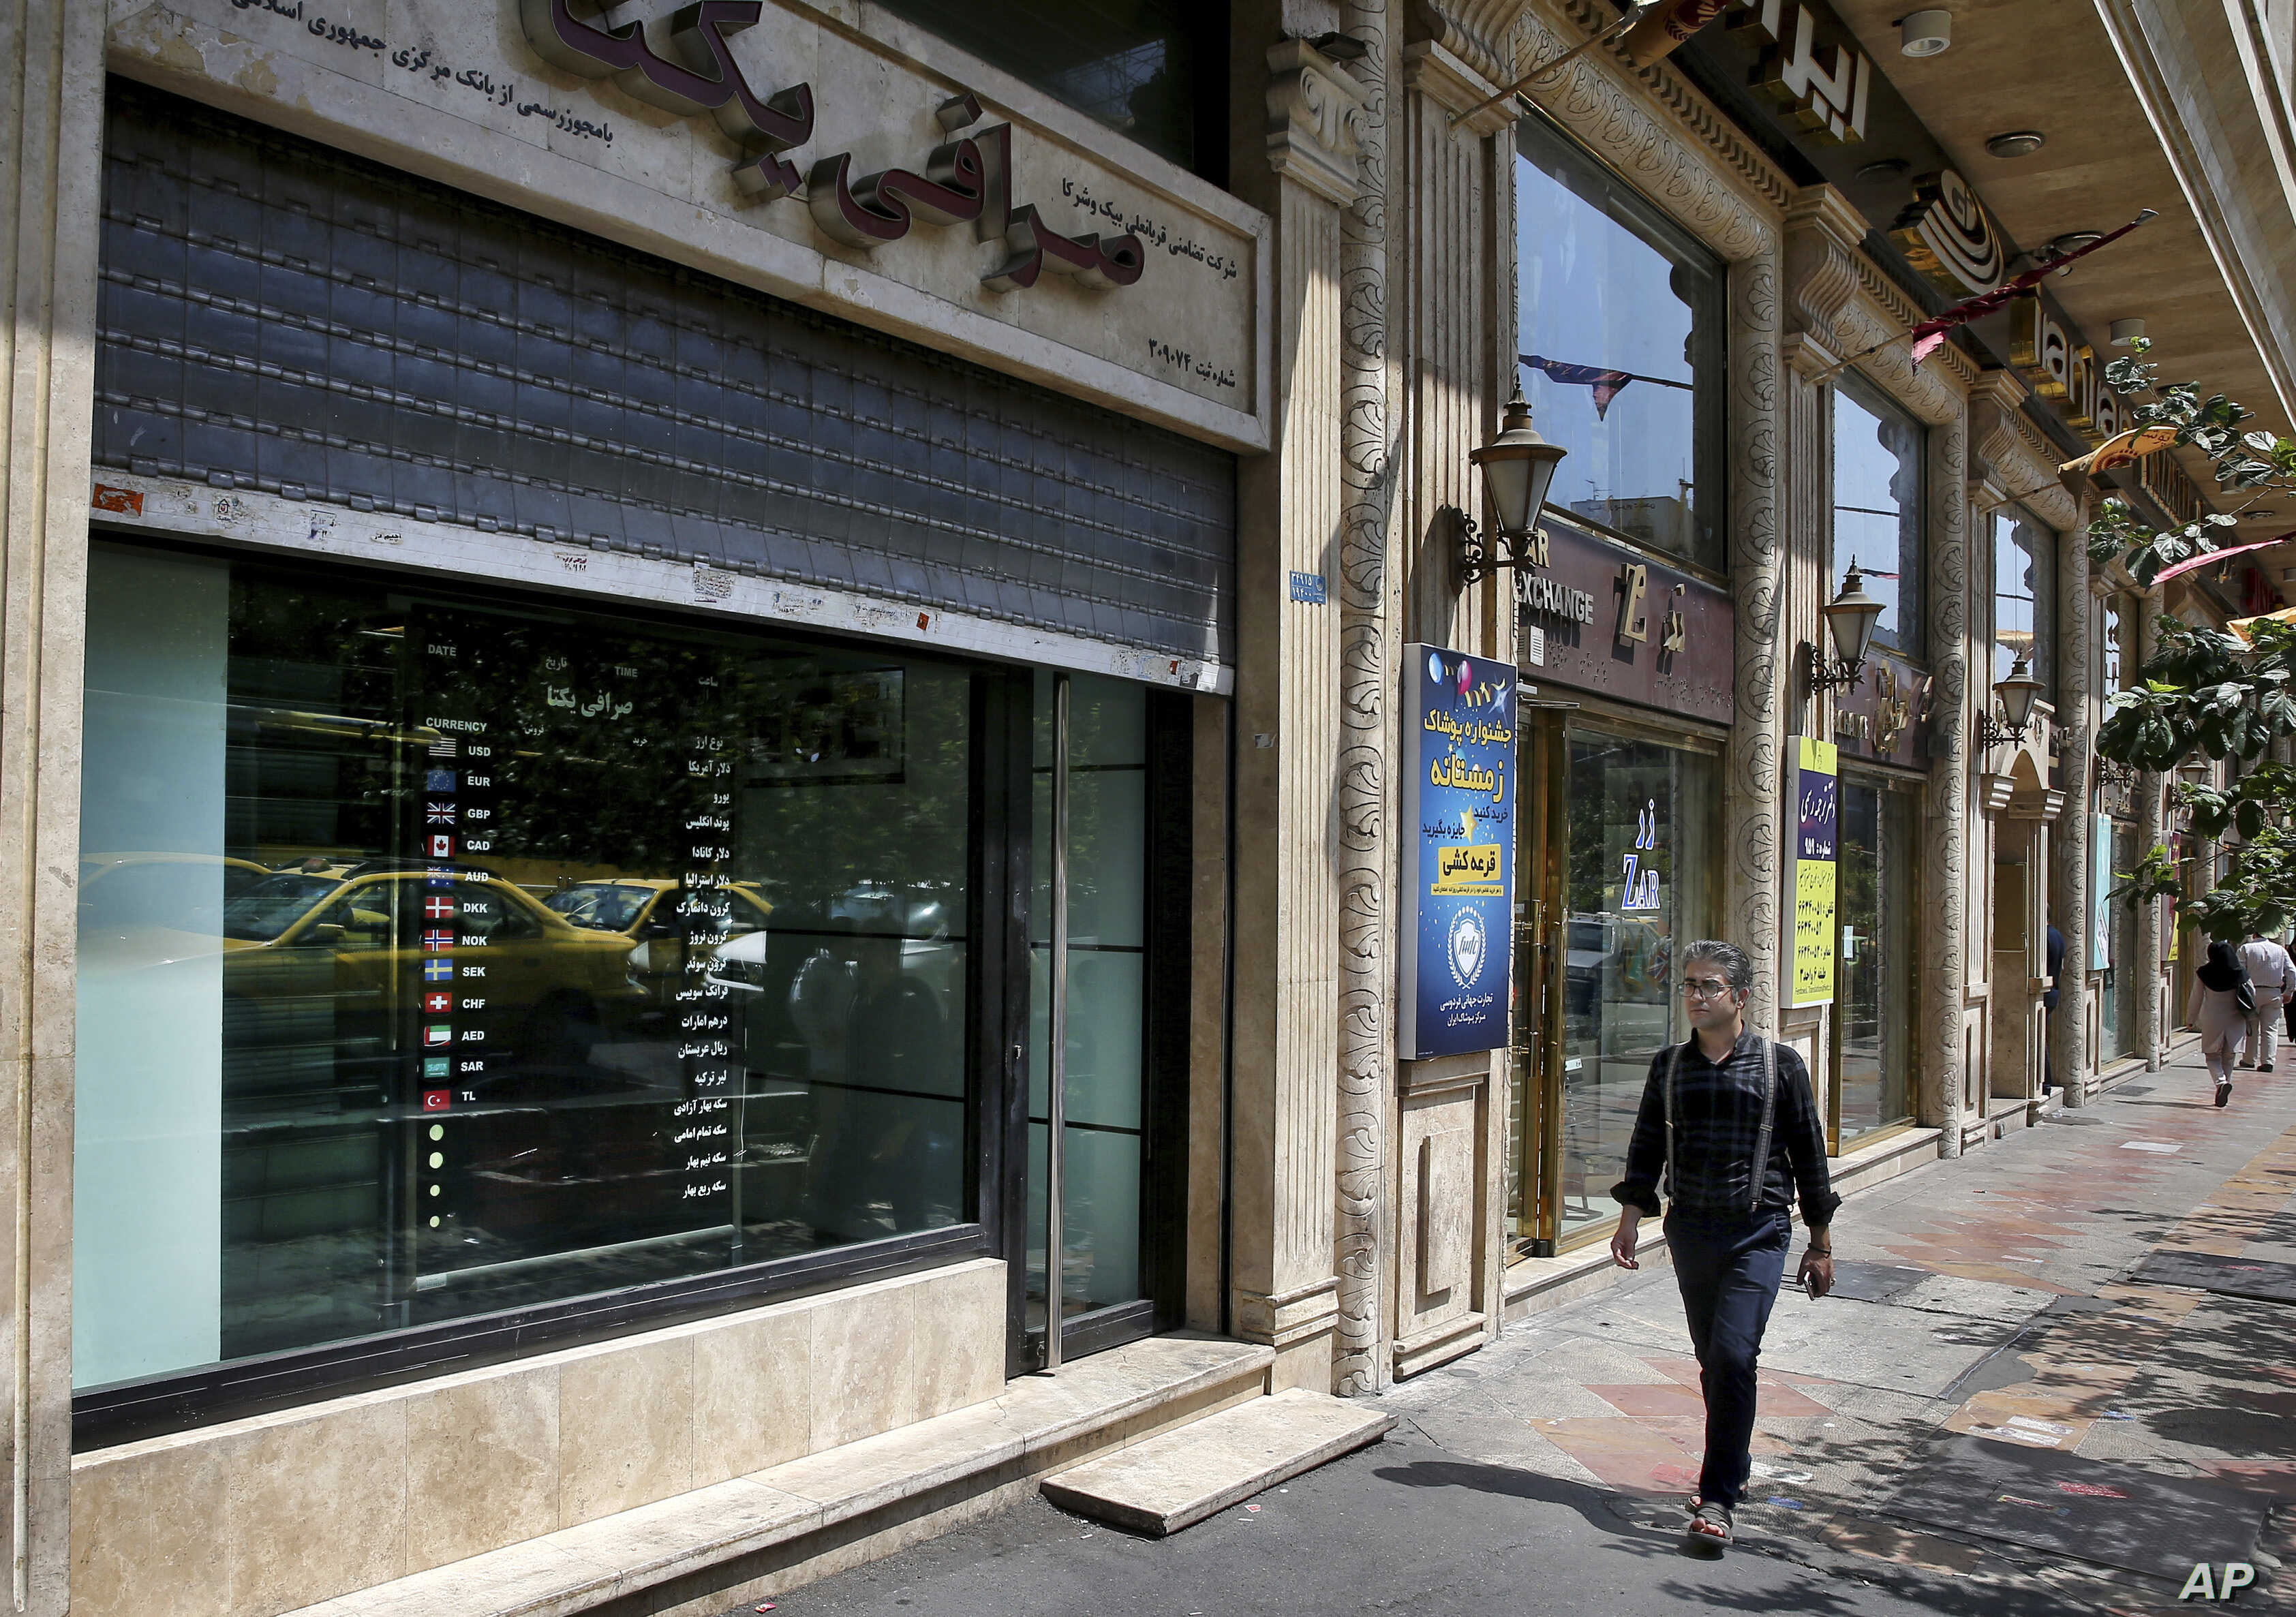 Currency exchange shops line a street in downtown Tehran, Iran, Aug. 7, 2018. Money exchange shops across Iran cautiously reopened on Tuesday after being shut for five months.